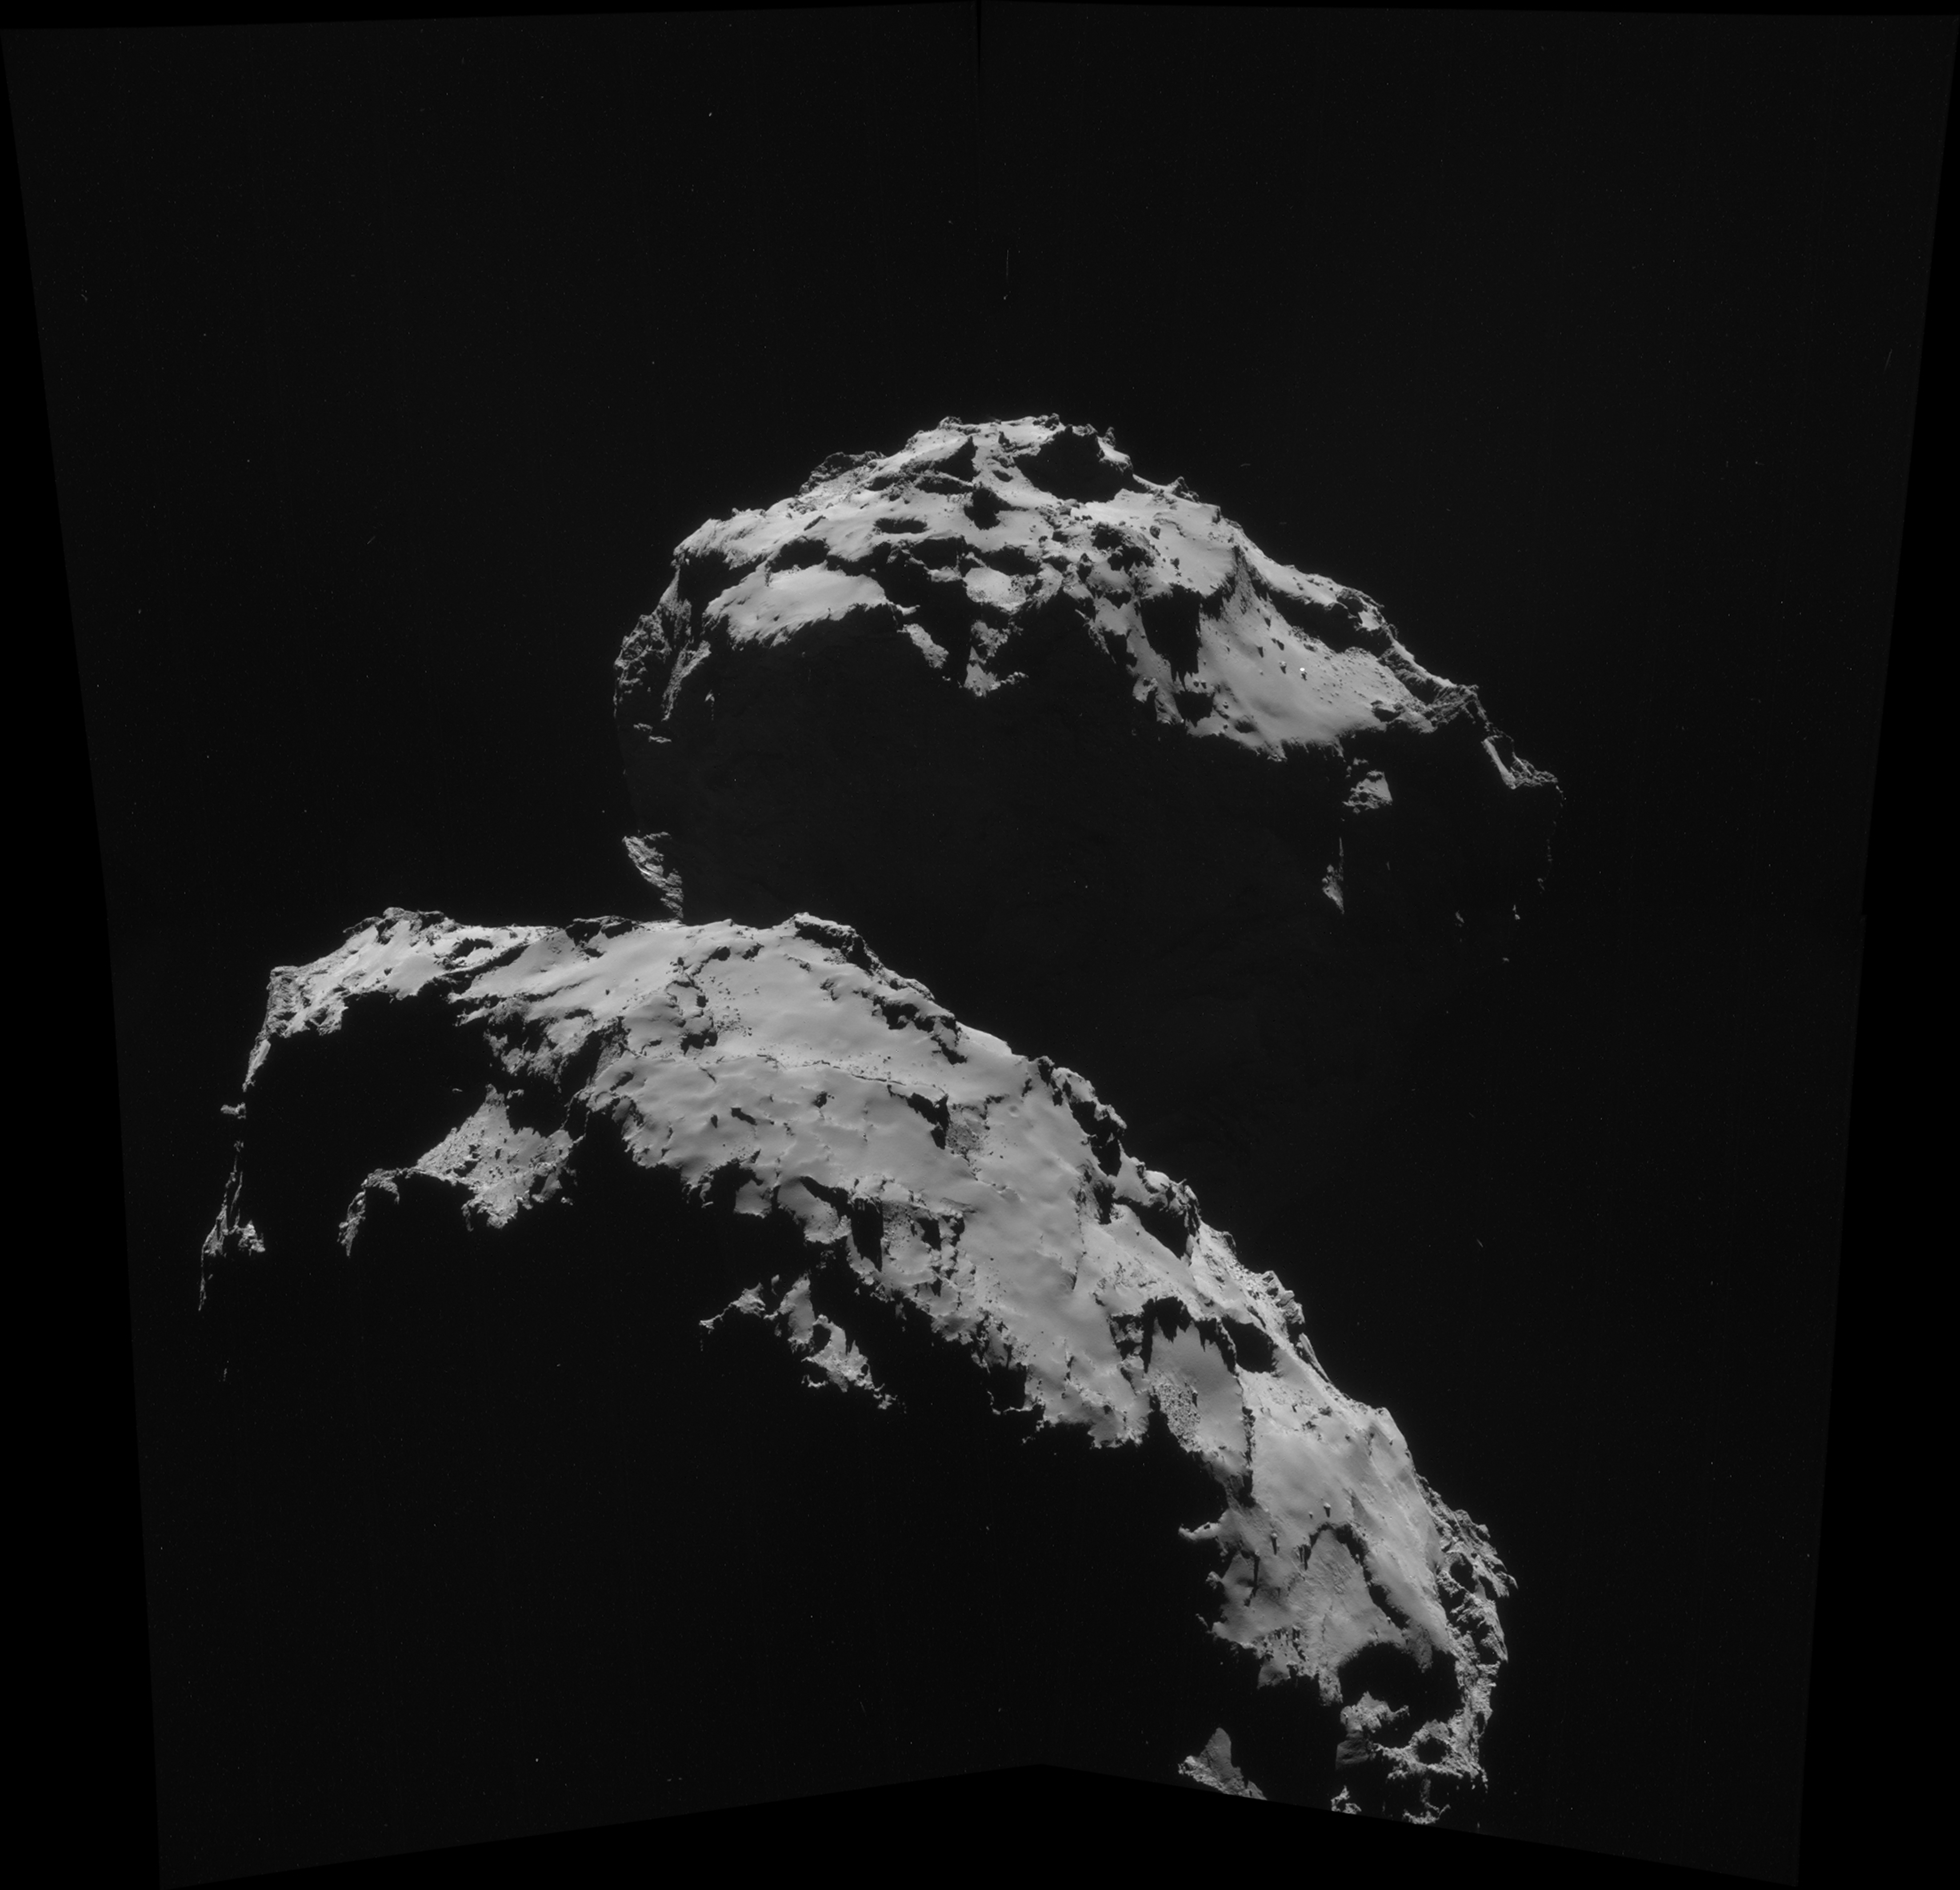 Space In Images 2014 09 Comet On 10 September Navcam Infrared Video Of A Hovering Nasa Lander 361 Mb